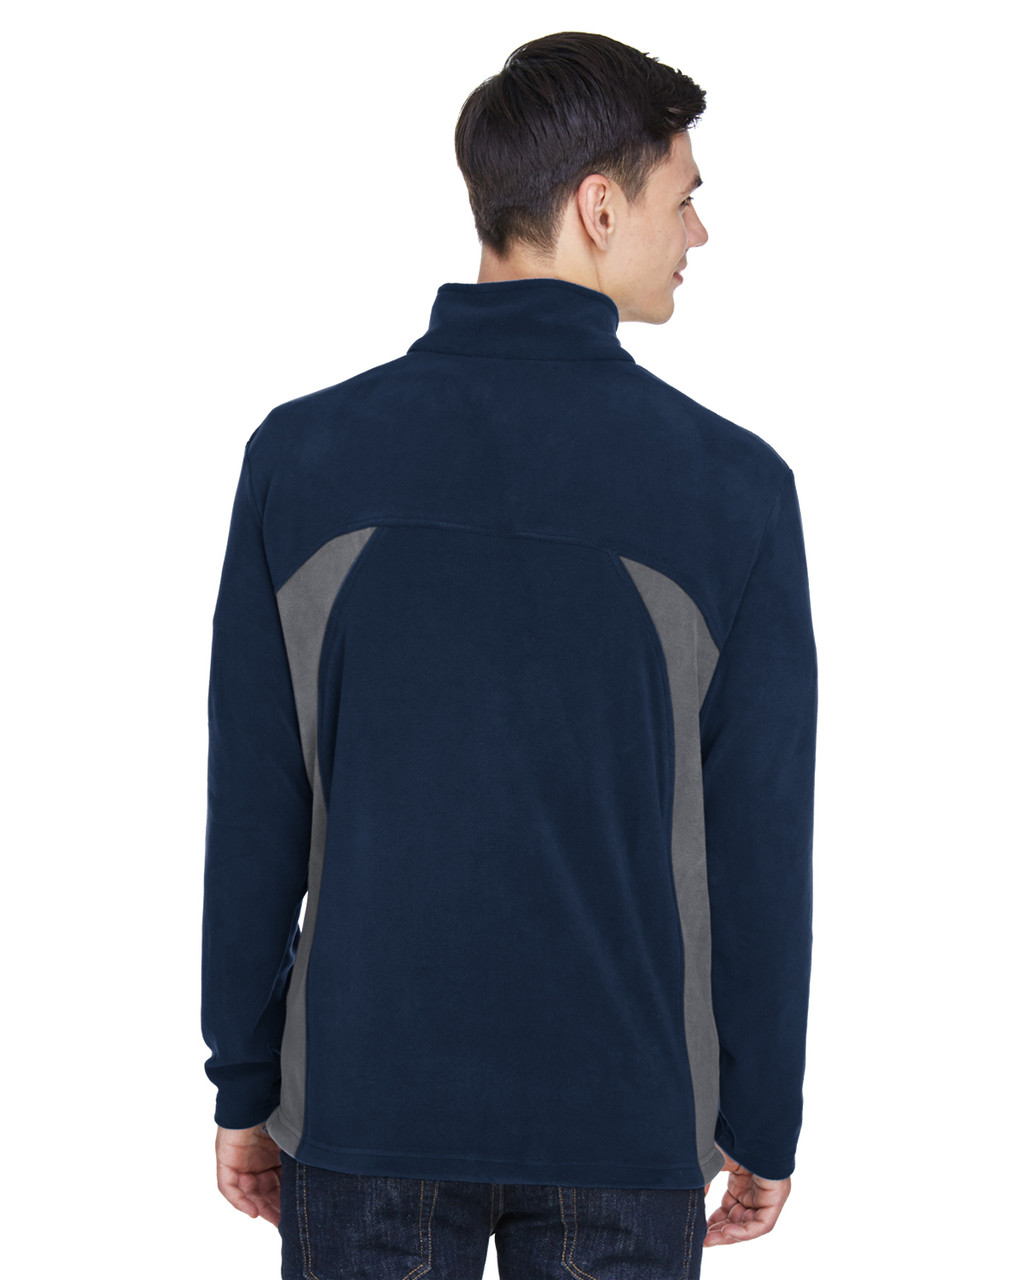 Midnight Navy - Back, 88123 North End Men's Microfleece Jacket | BlankClothing.ca